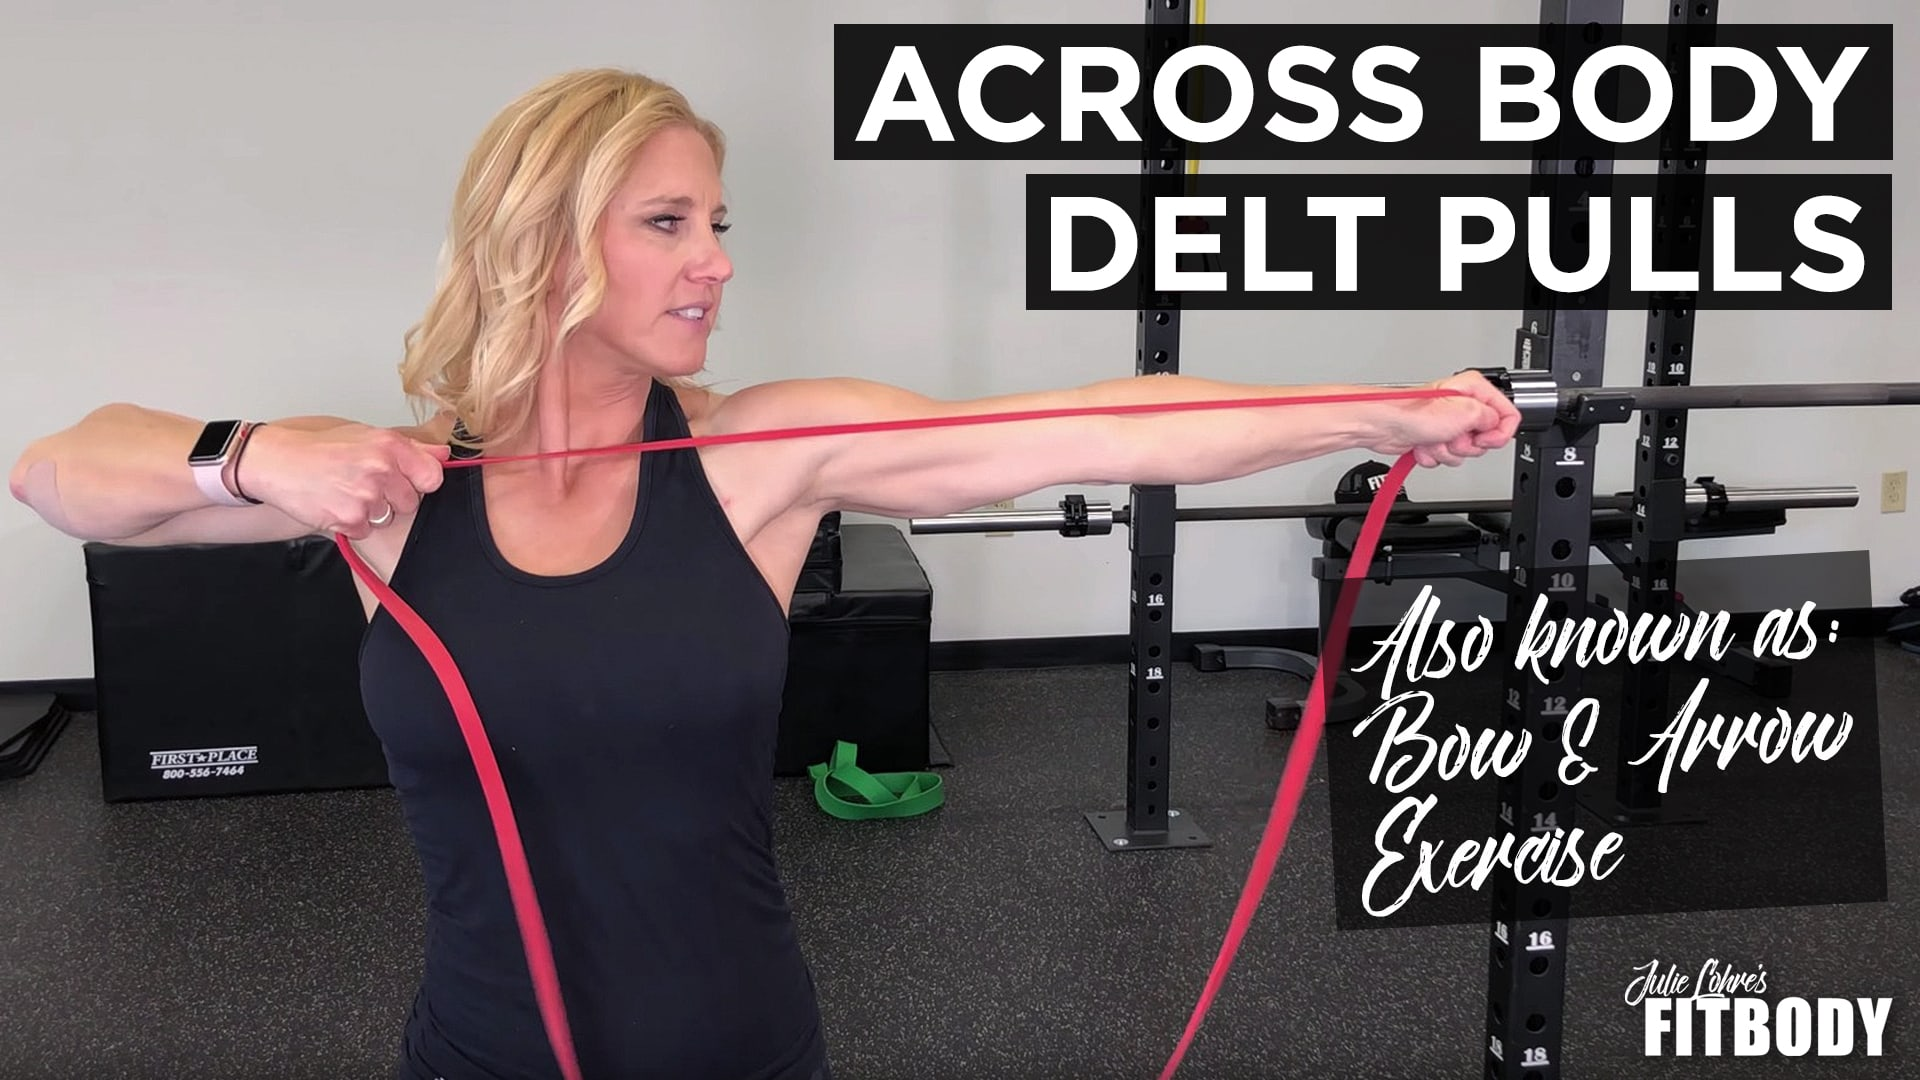 Bow And Arrow Exercise - Across Body Delt Pulls